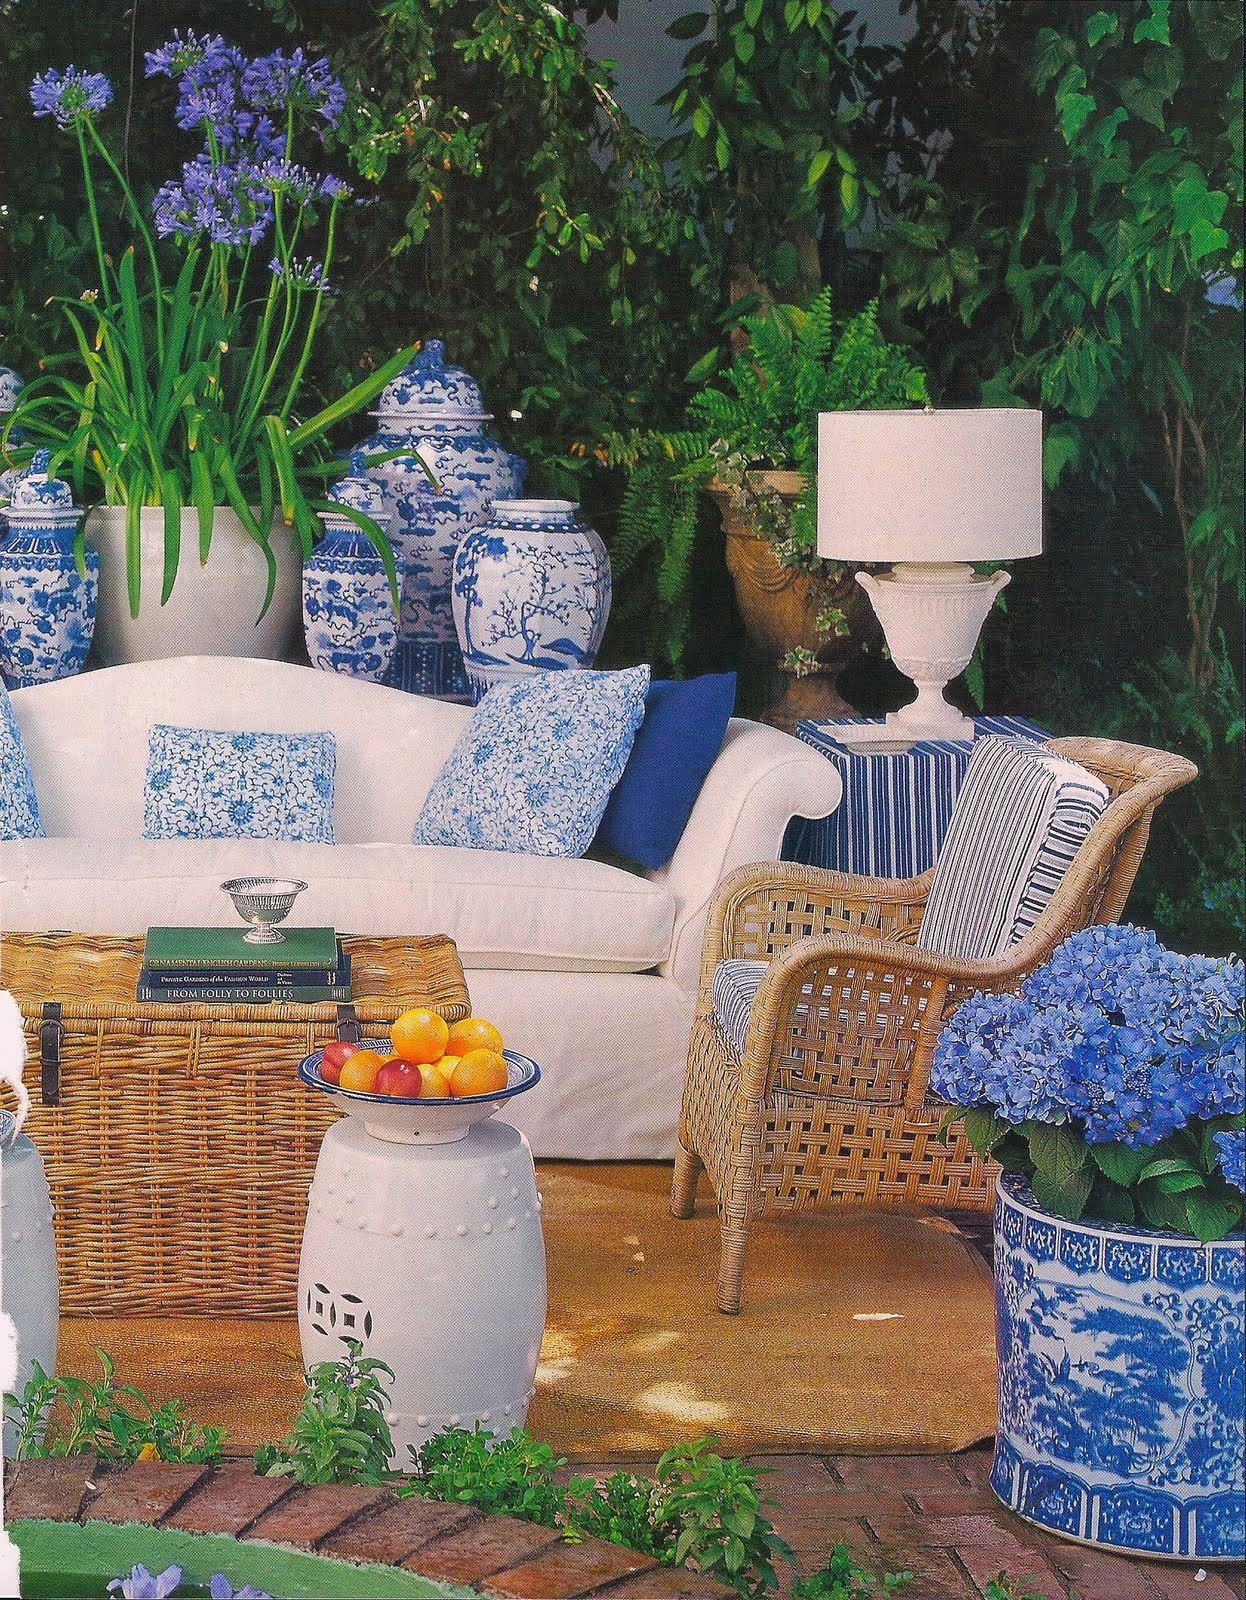 Decorating with Blue and White Outdoors | Blue decor, Garden